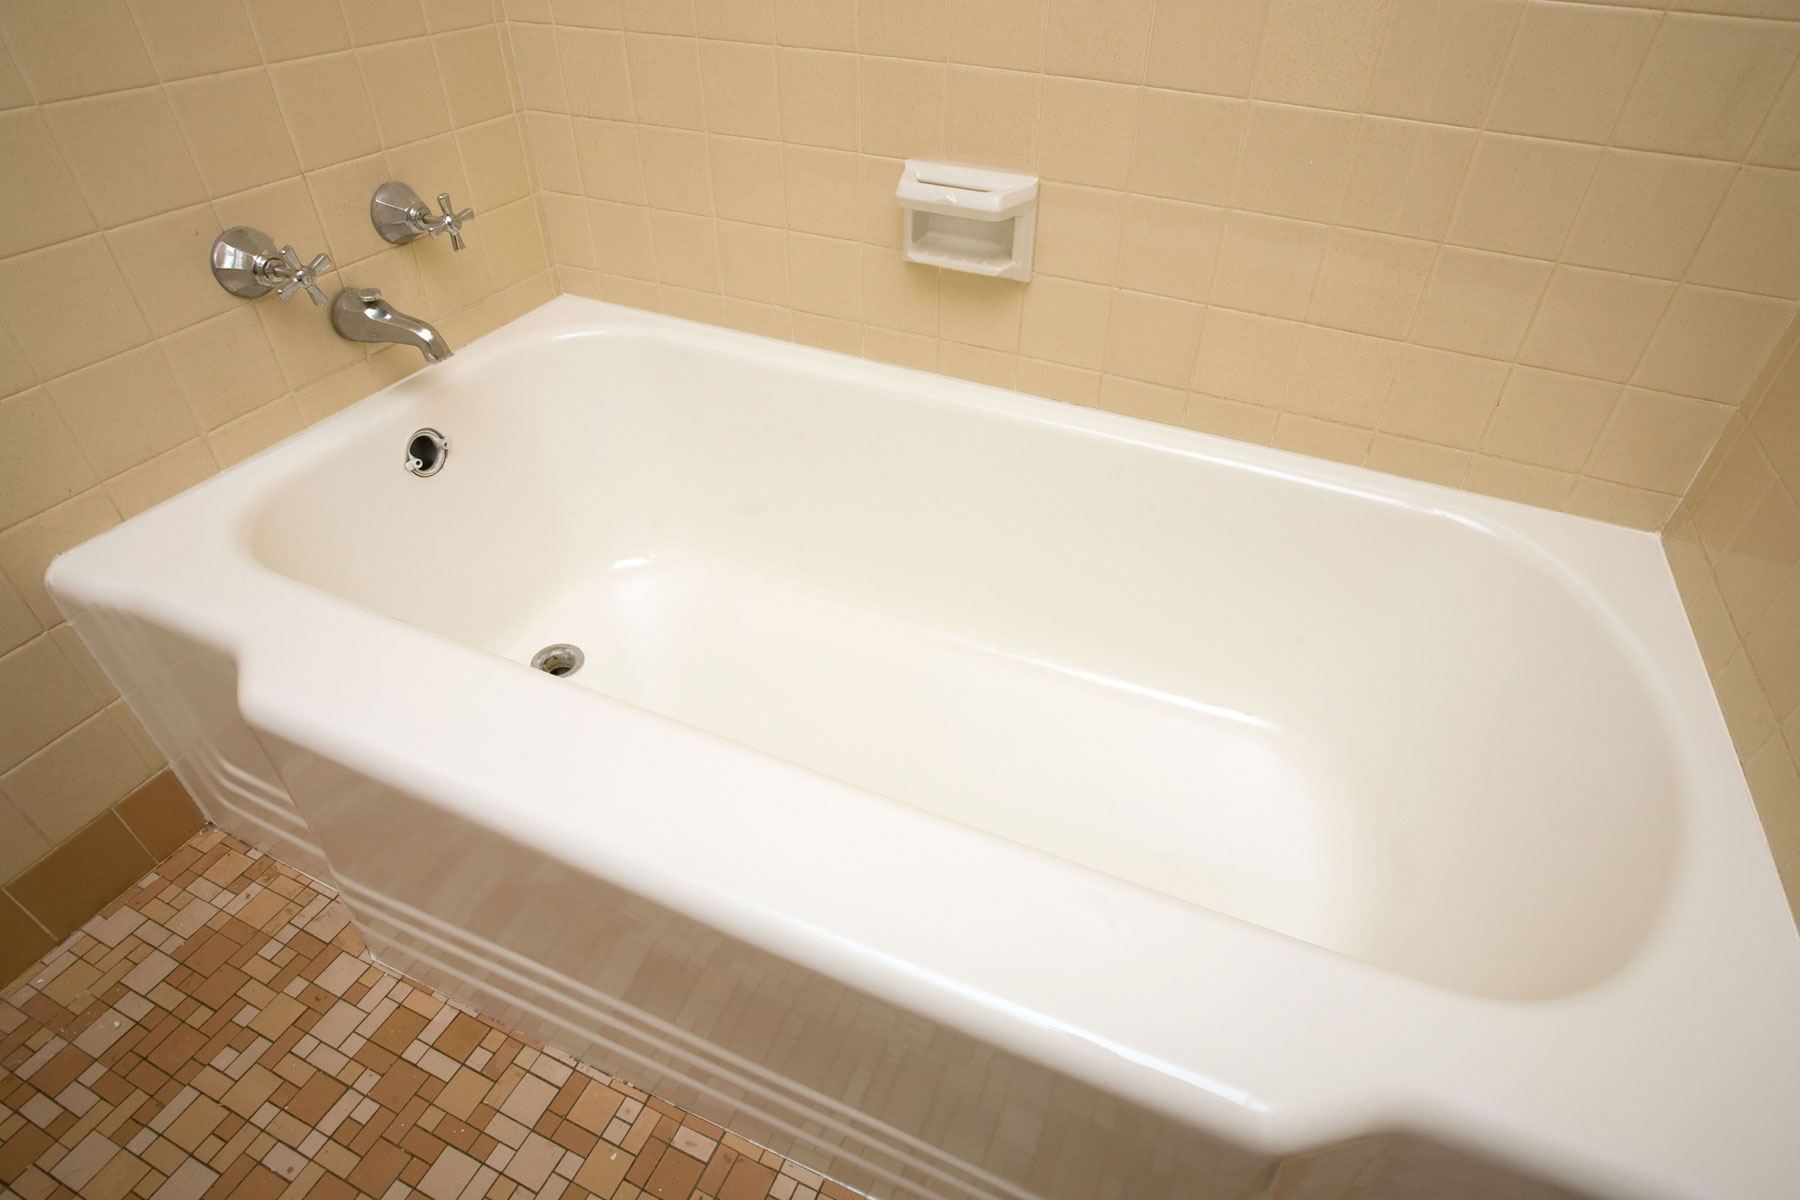 Save Money With Bathtub Shower Refinishing And Resurfacing - Bathtub restoration companies